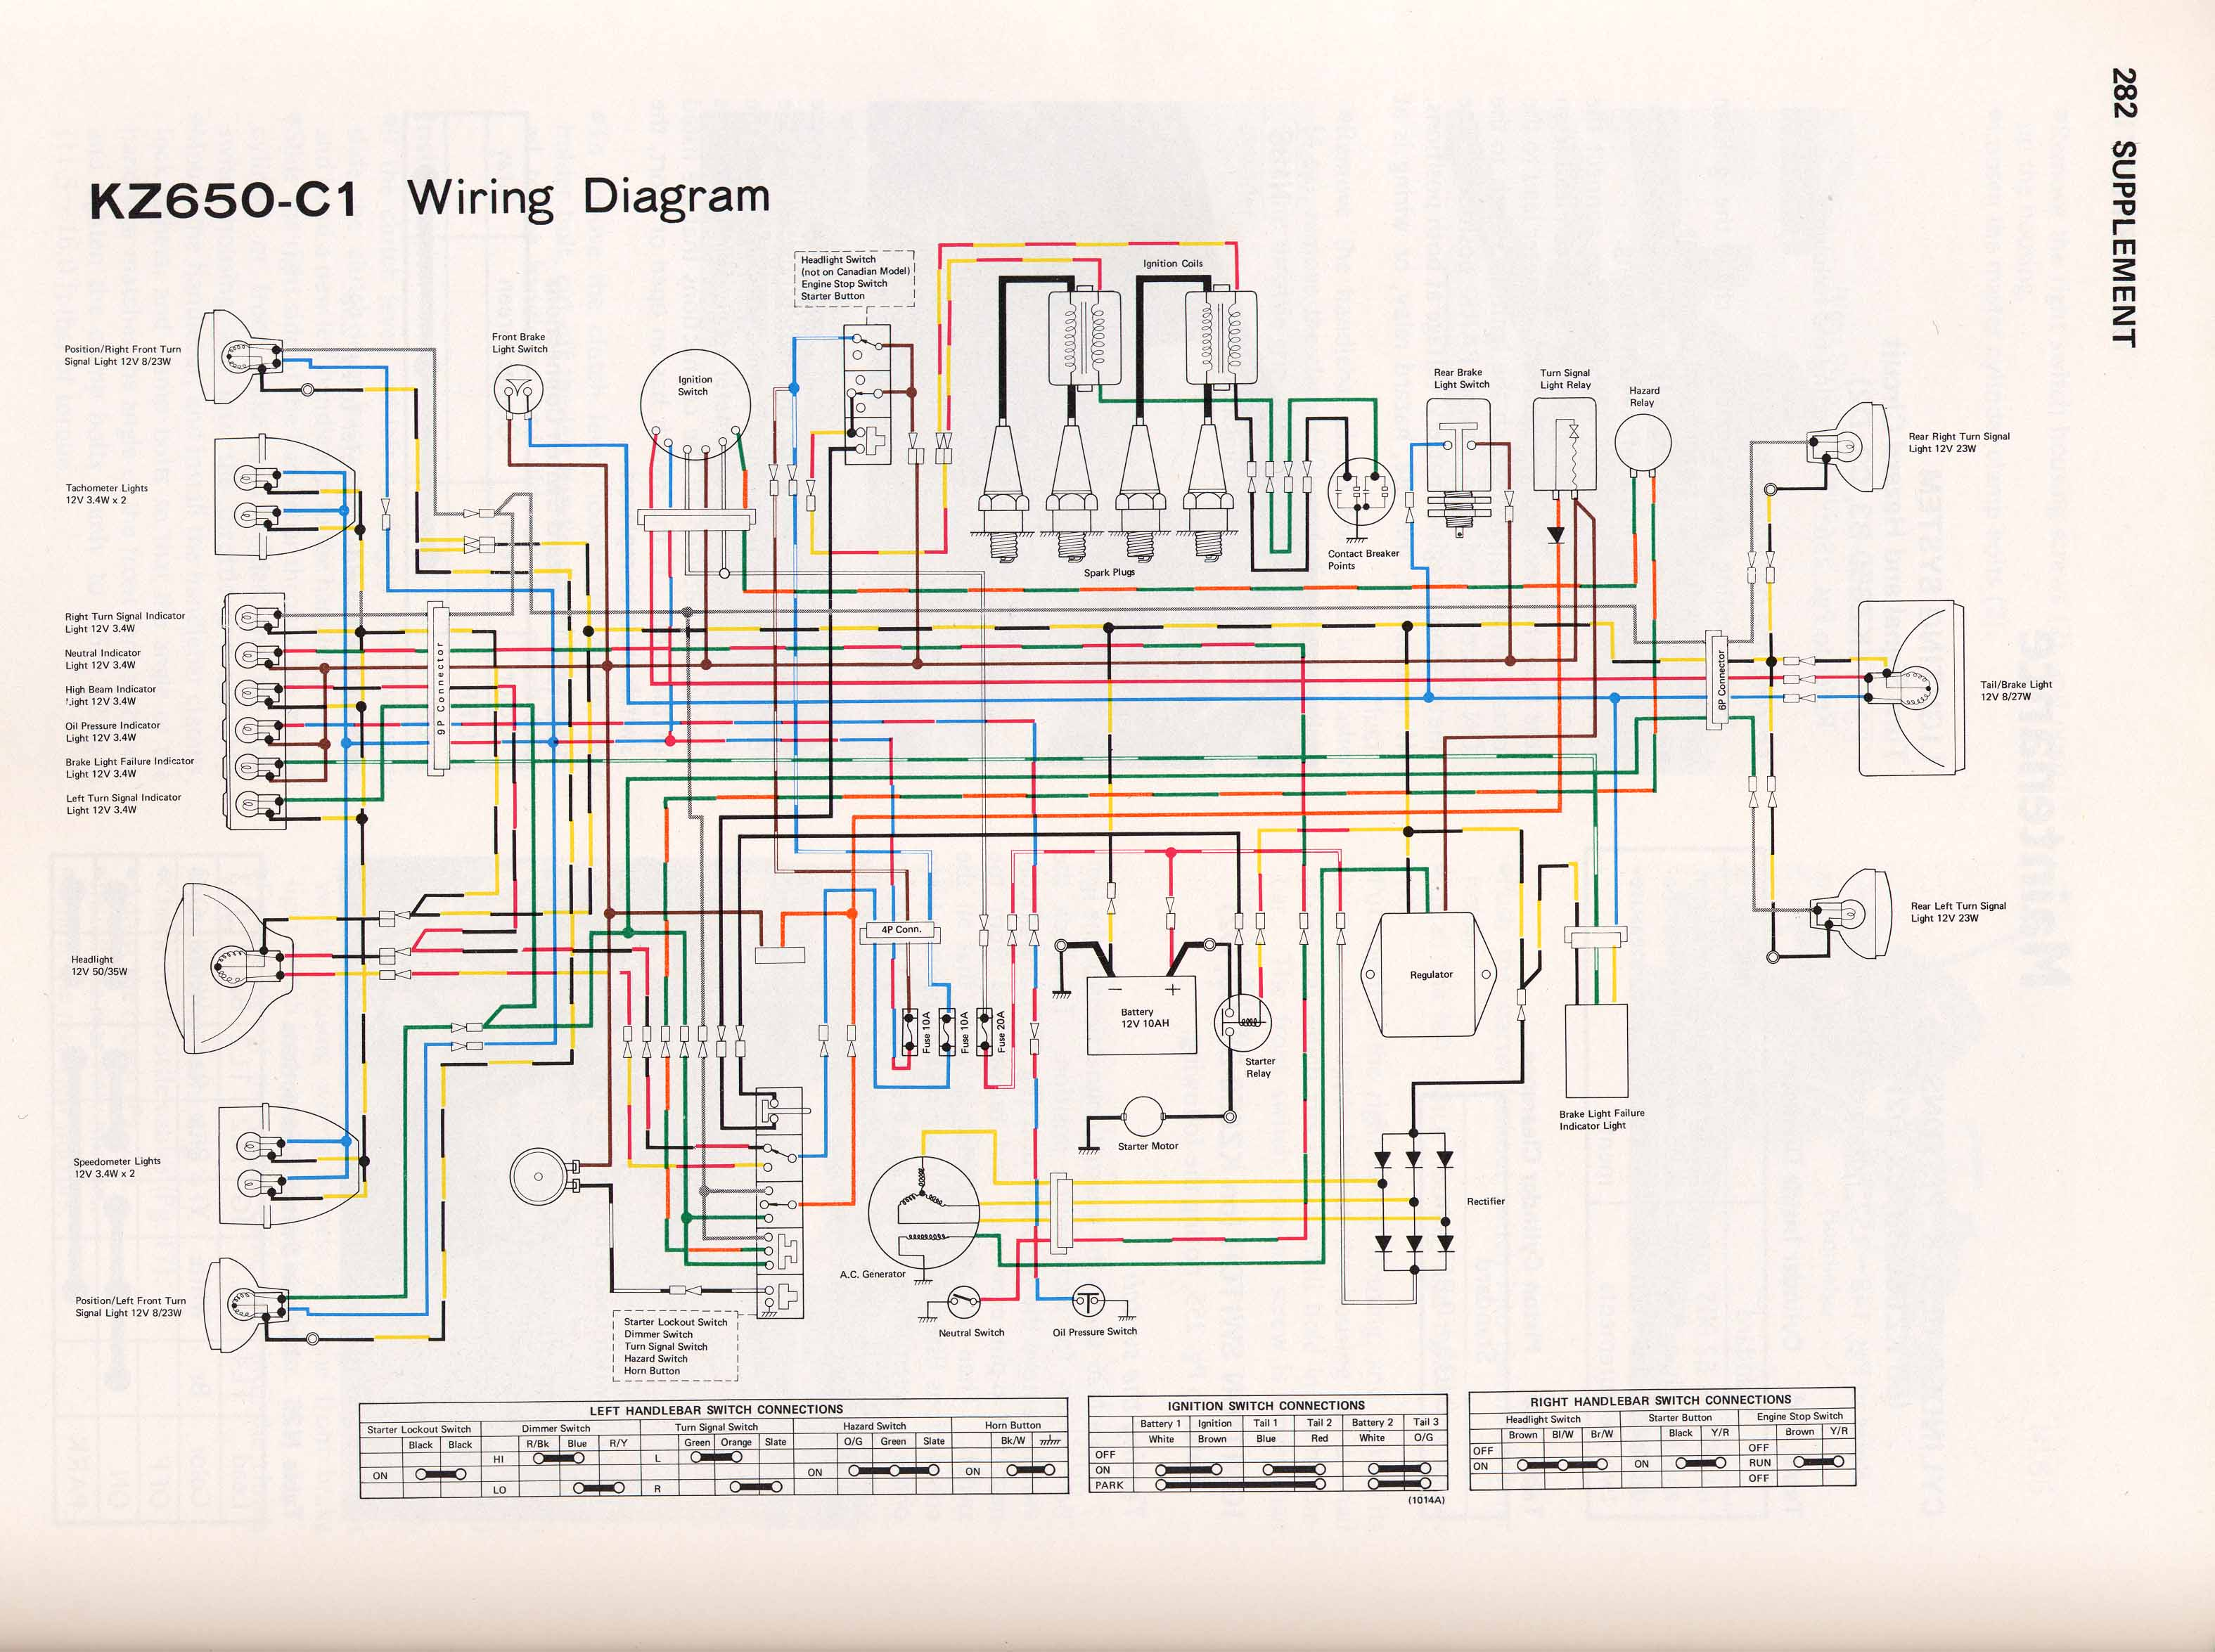 kz650 info wiring diagrams 1977 kz1000 wiring diagram